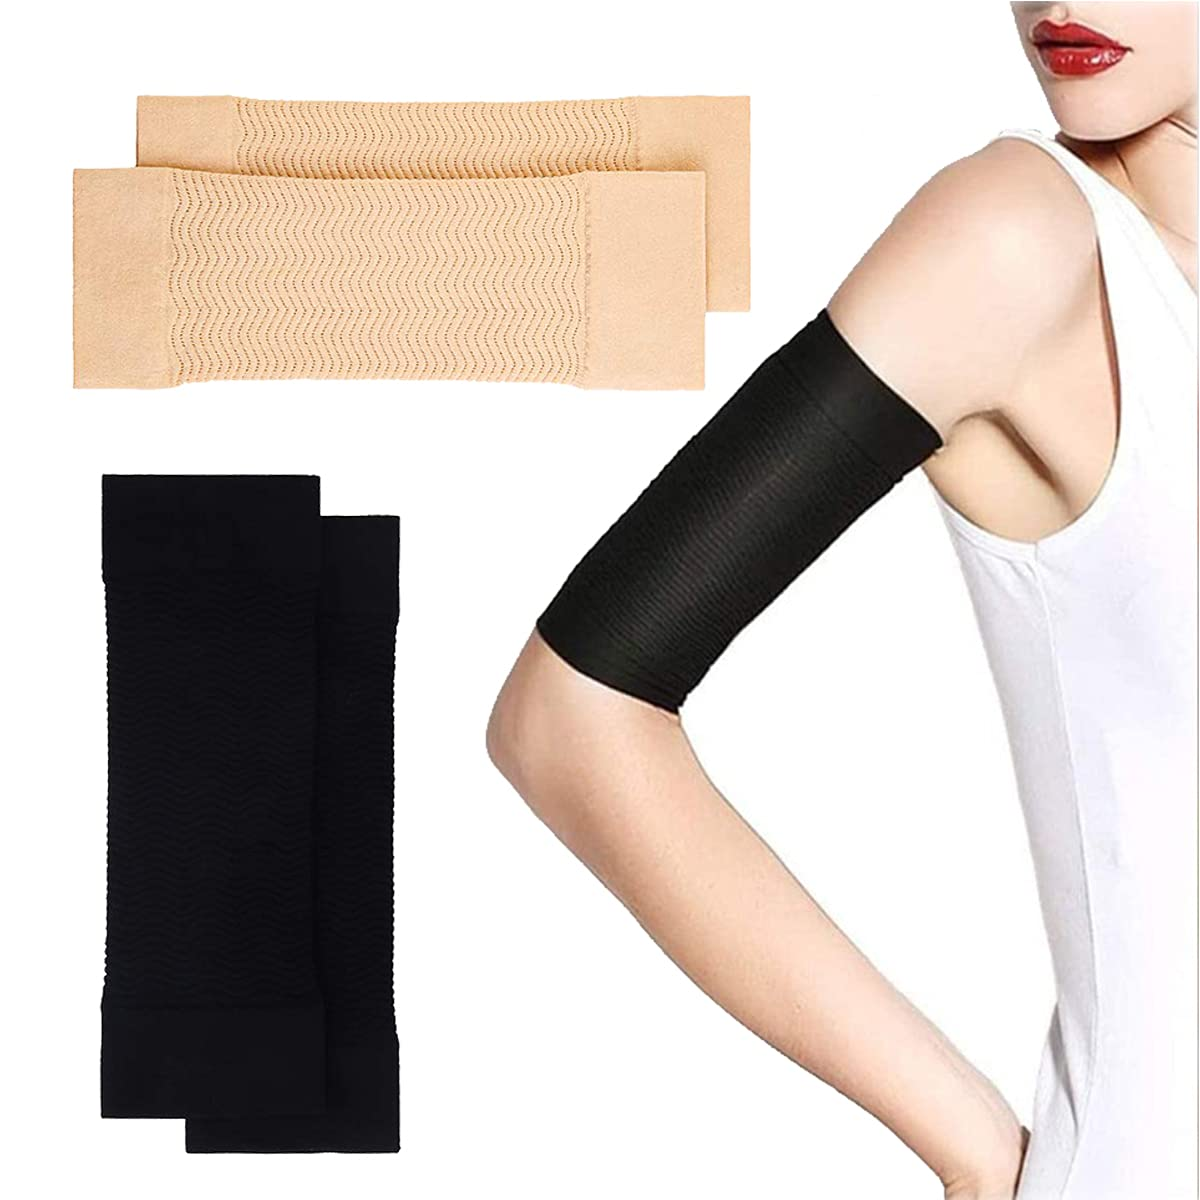 2 Pairs Arm Slimming Shaper W Compression free Sleeve Max 63% OFF Wrap